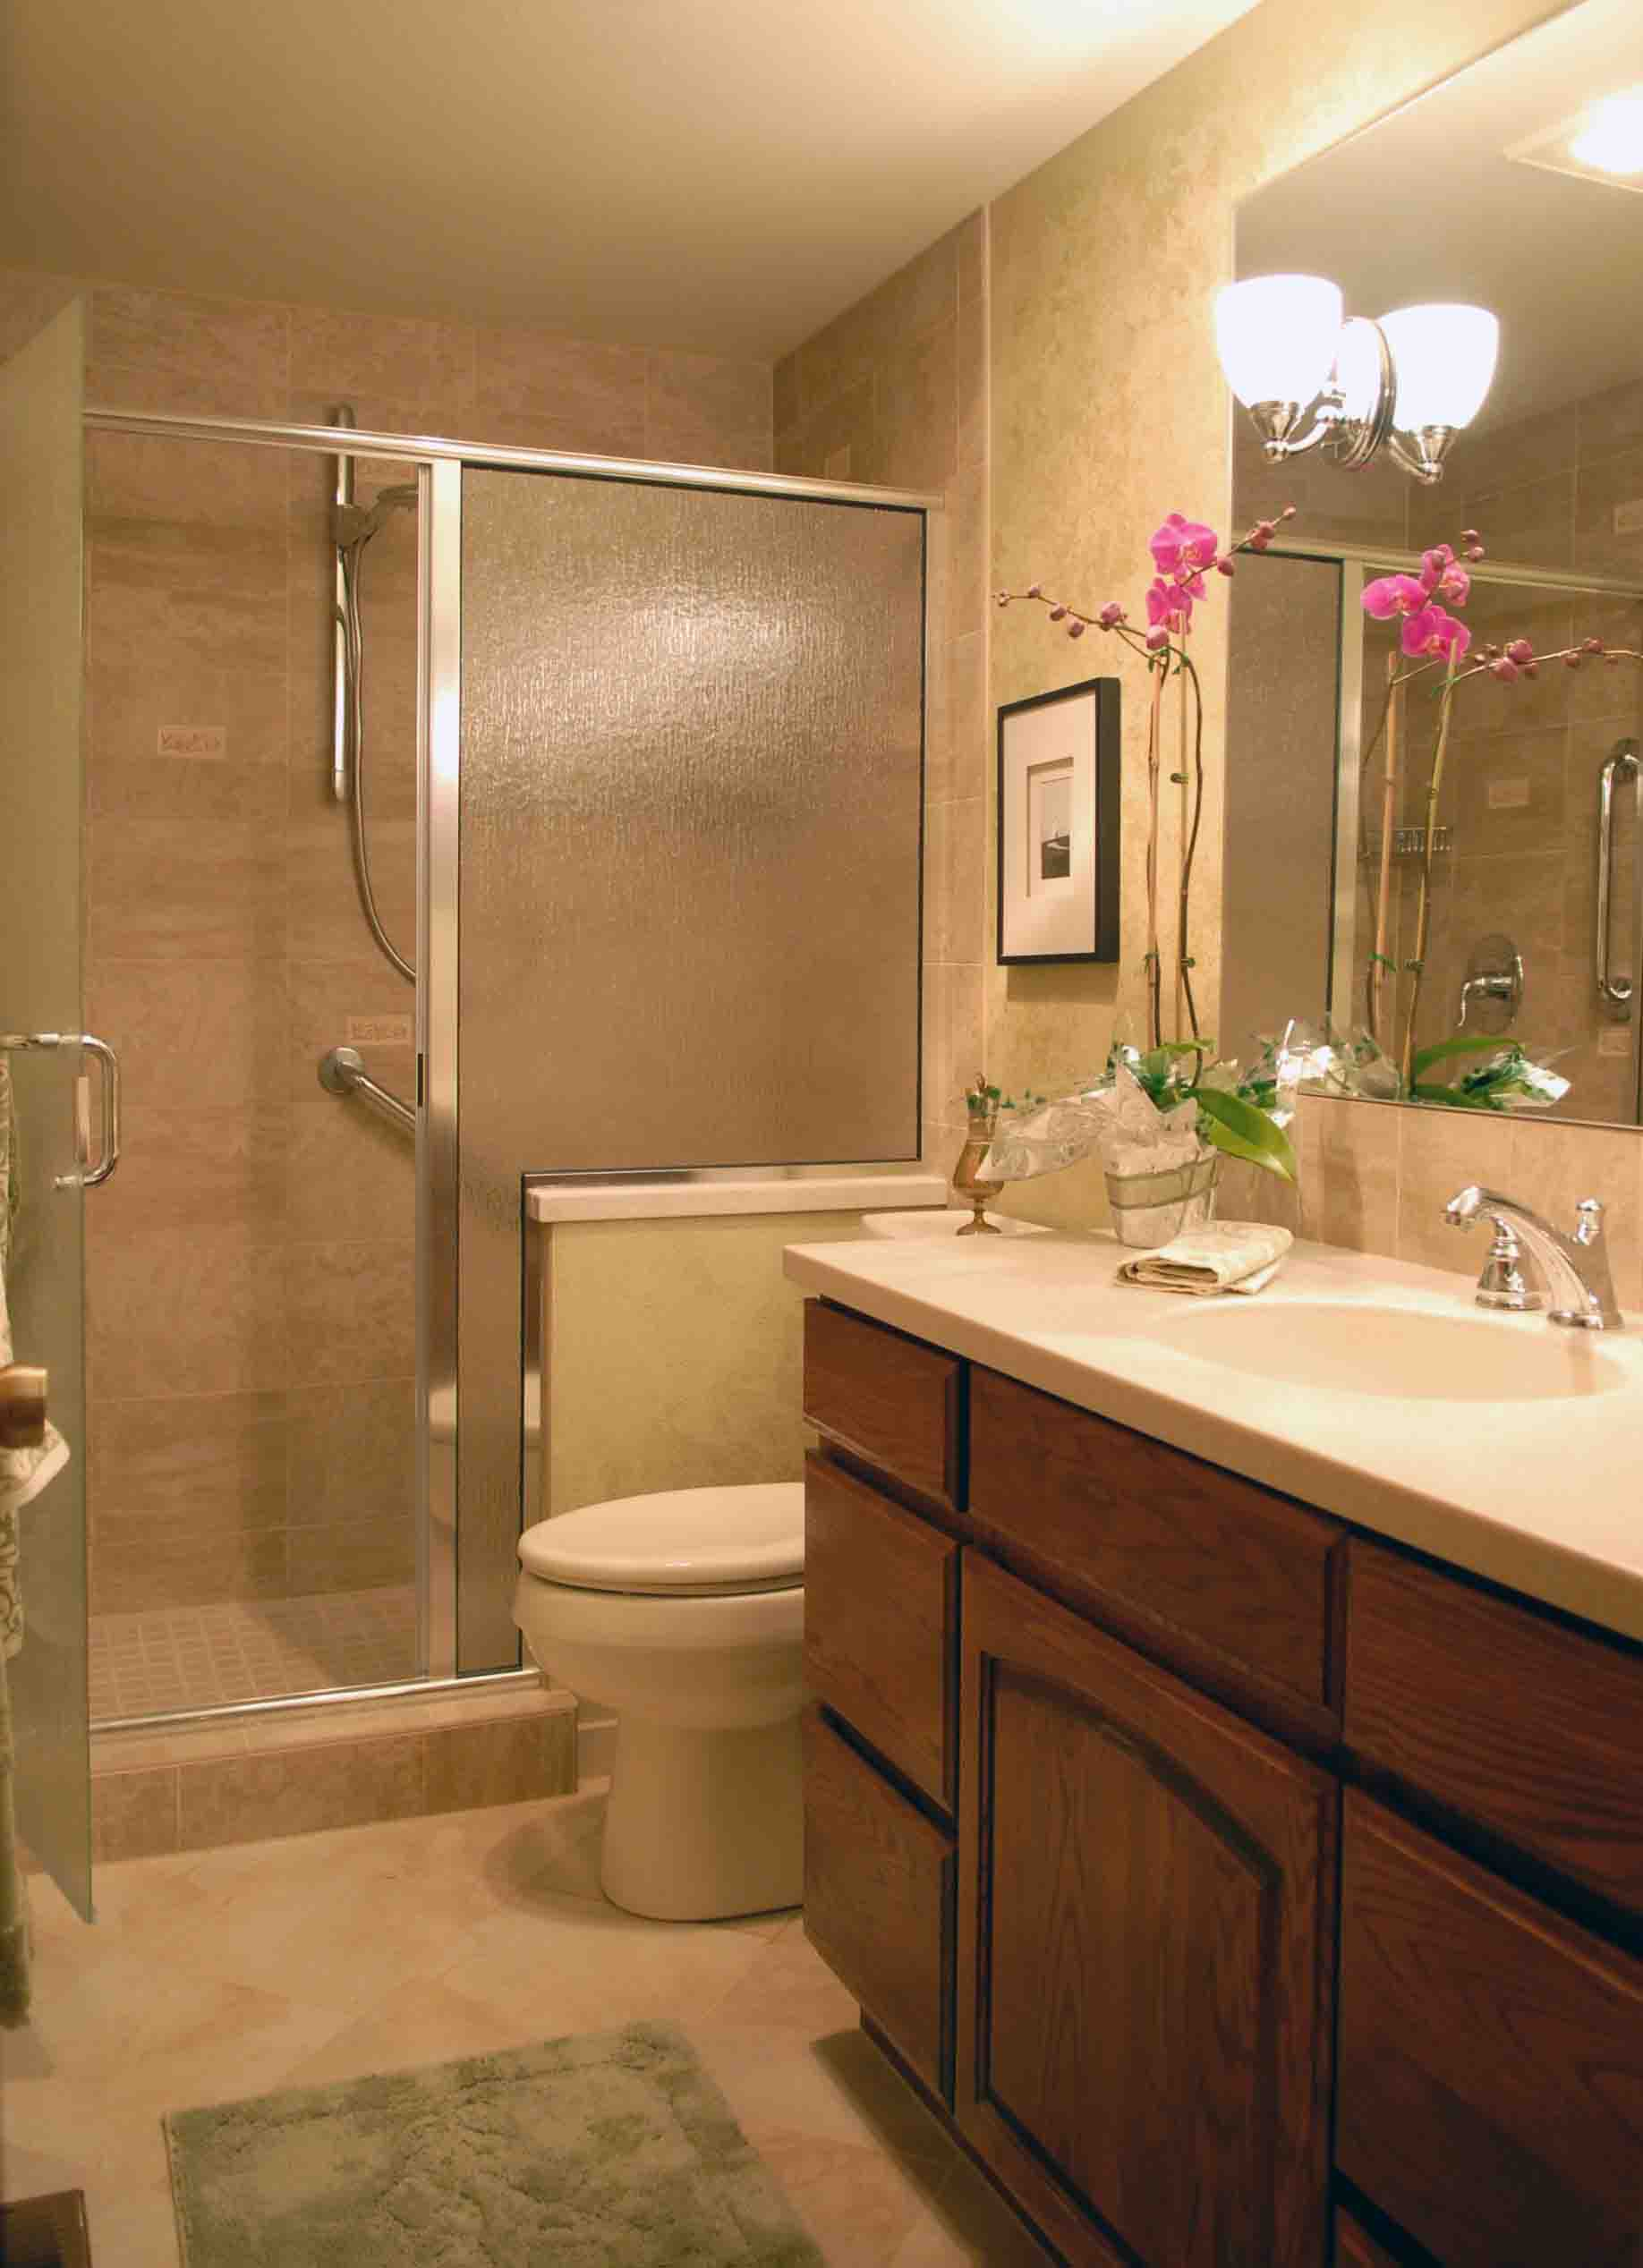 use oak vanity and closed shower space completing small bathroom remodel ideas with clear wall mirror - Ideas For Remodeling A Small Bathroom